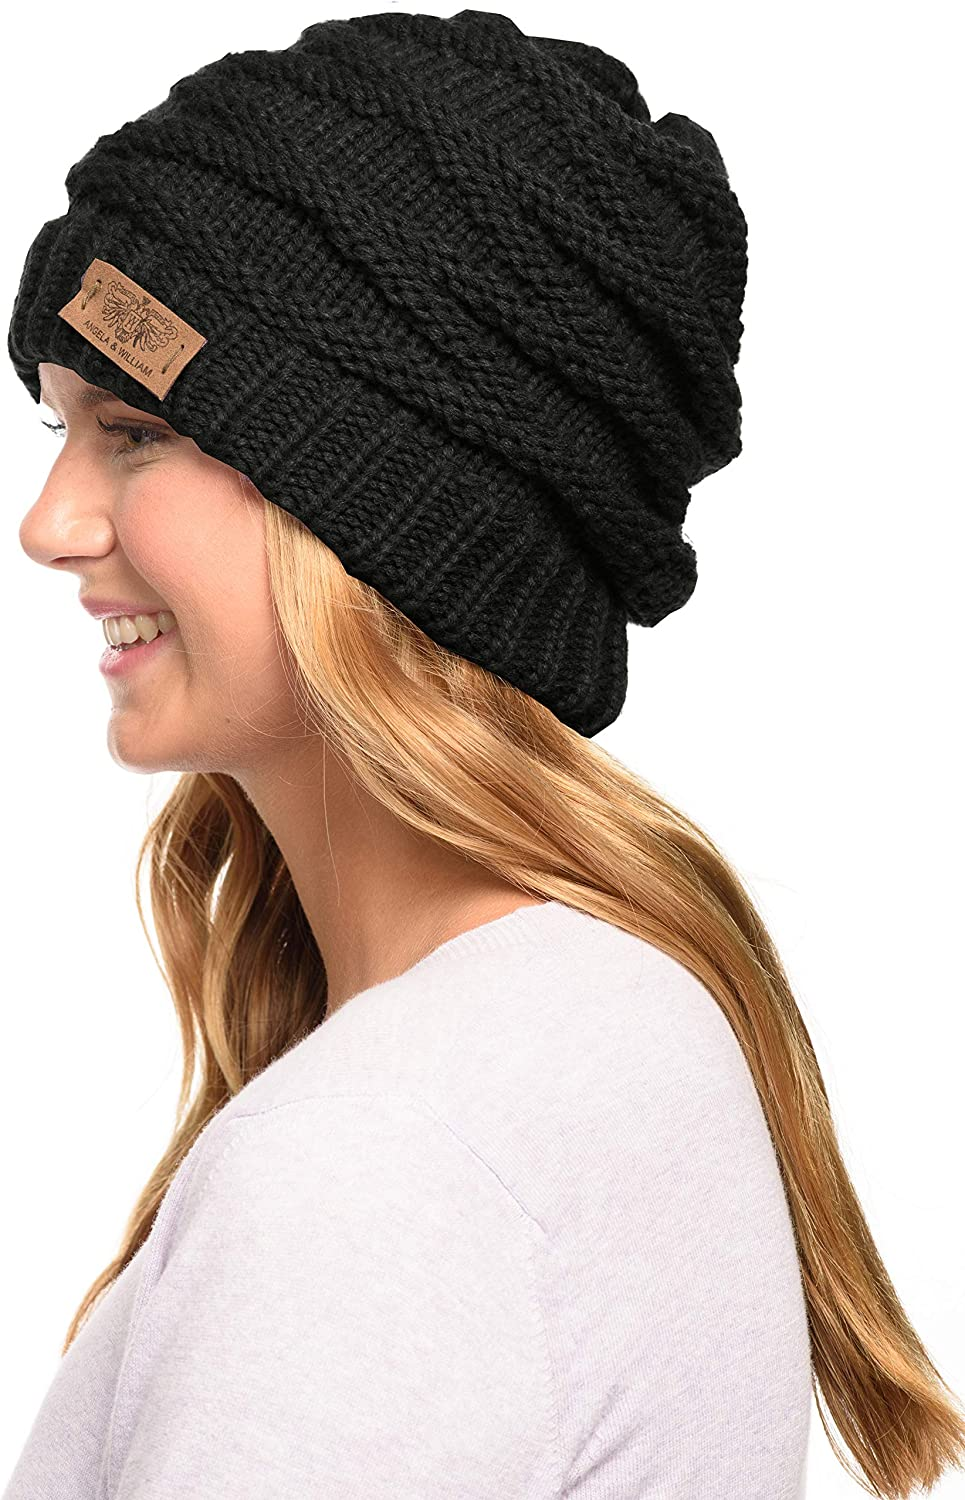 ANGELA WILLIAM Winter Warm Free shipping on posting reviews Thick 1 year warranty Knit Bean Skull Cable Slouchy